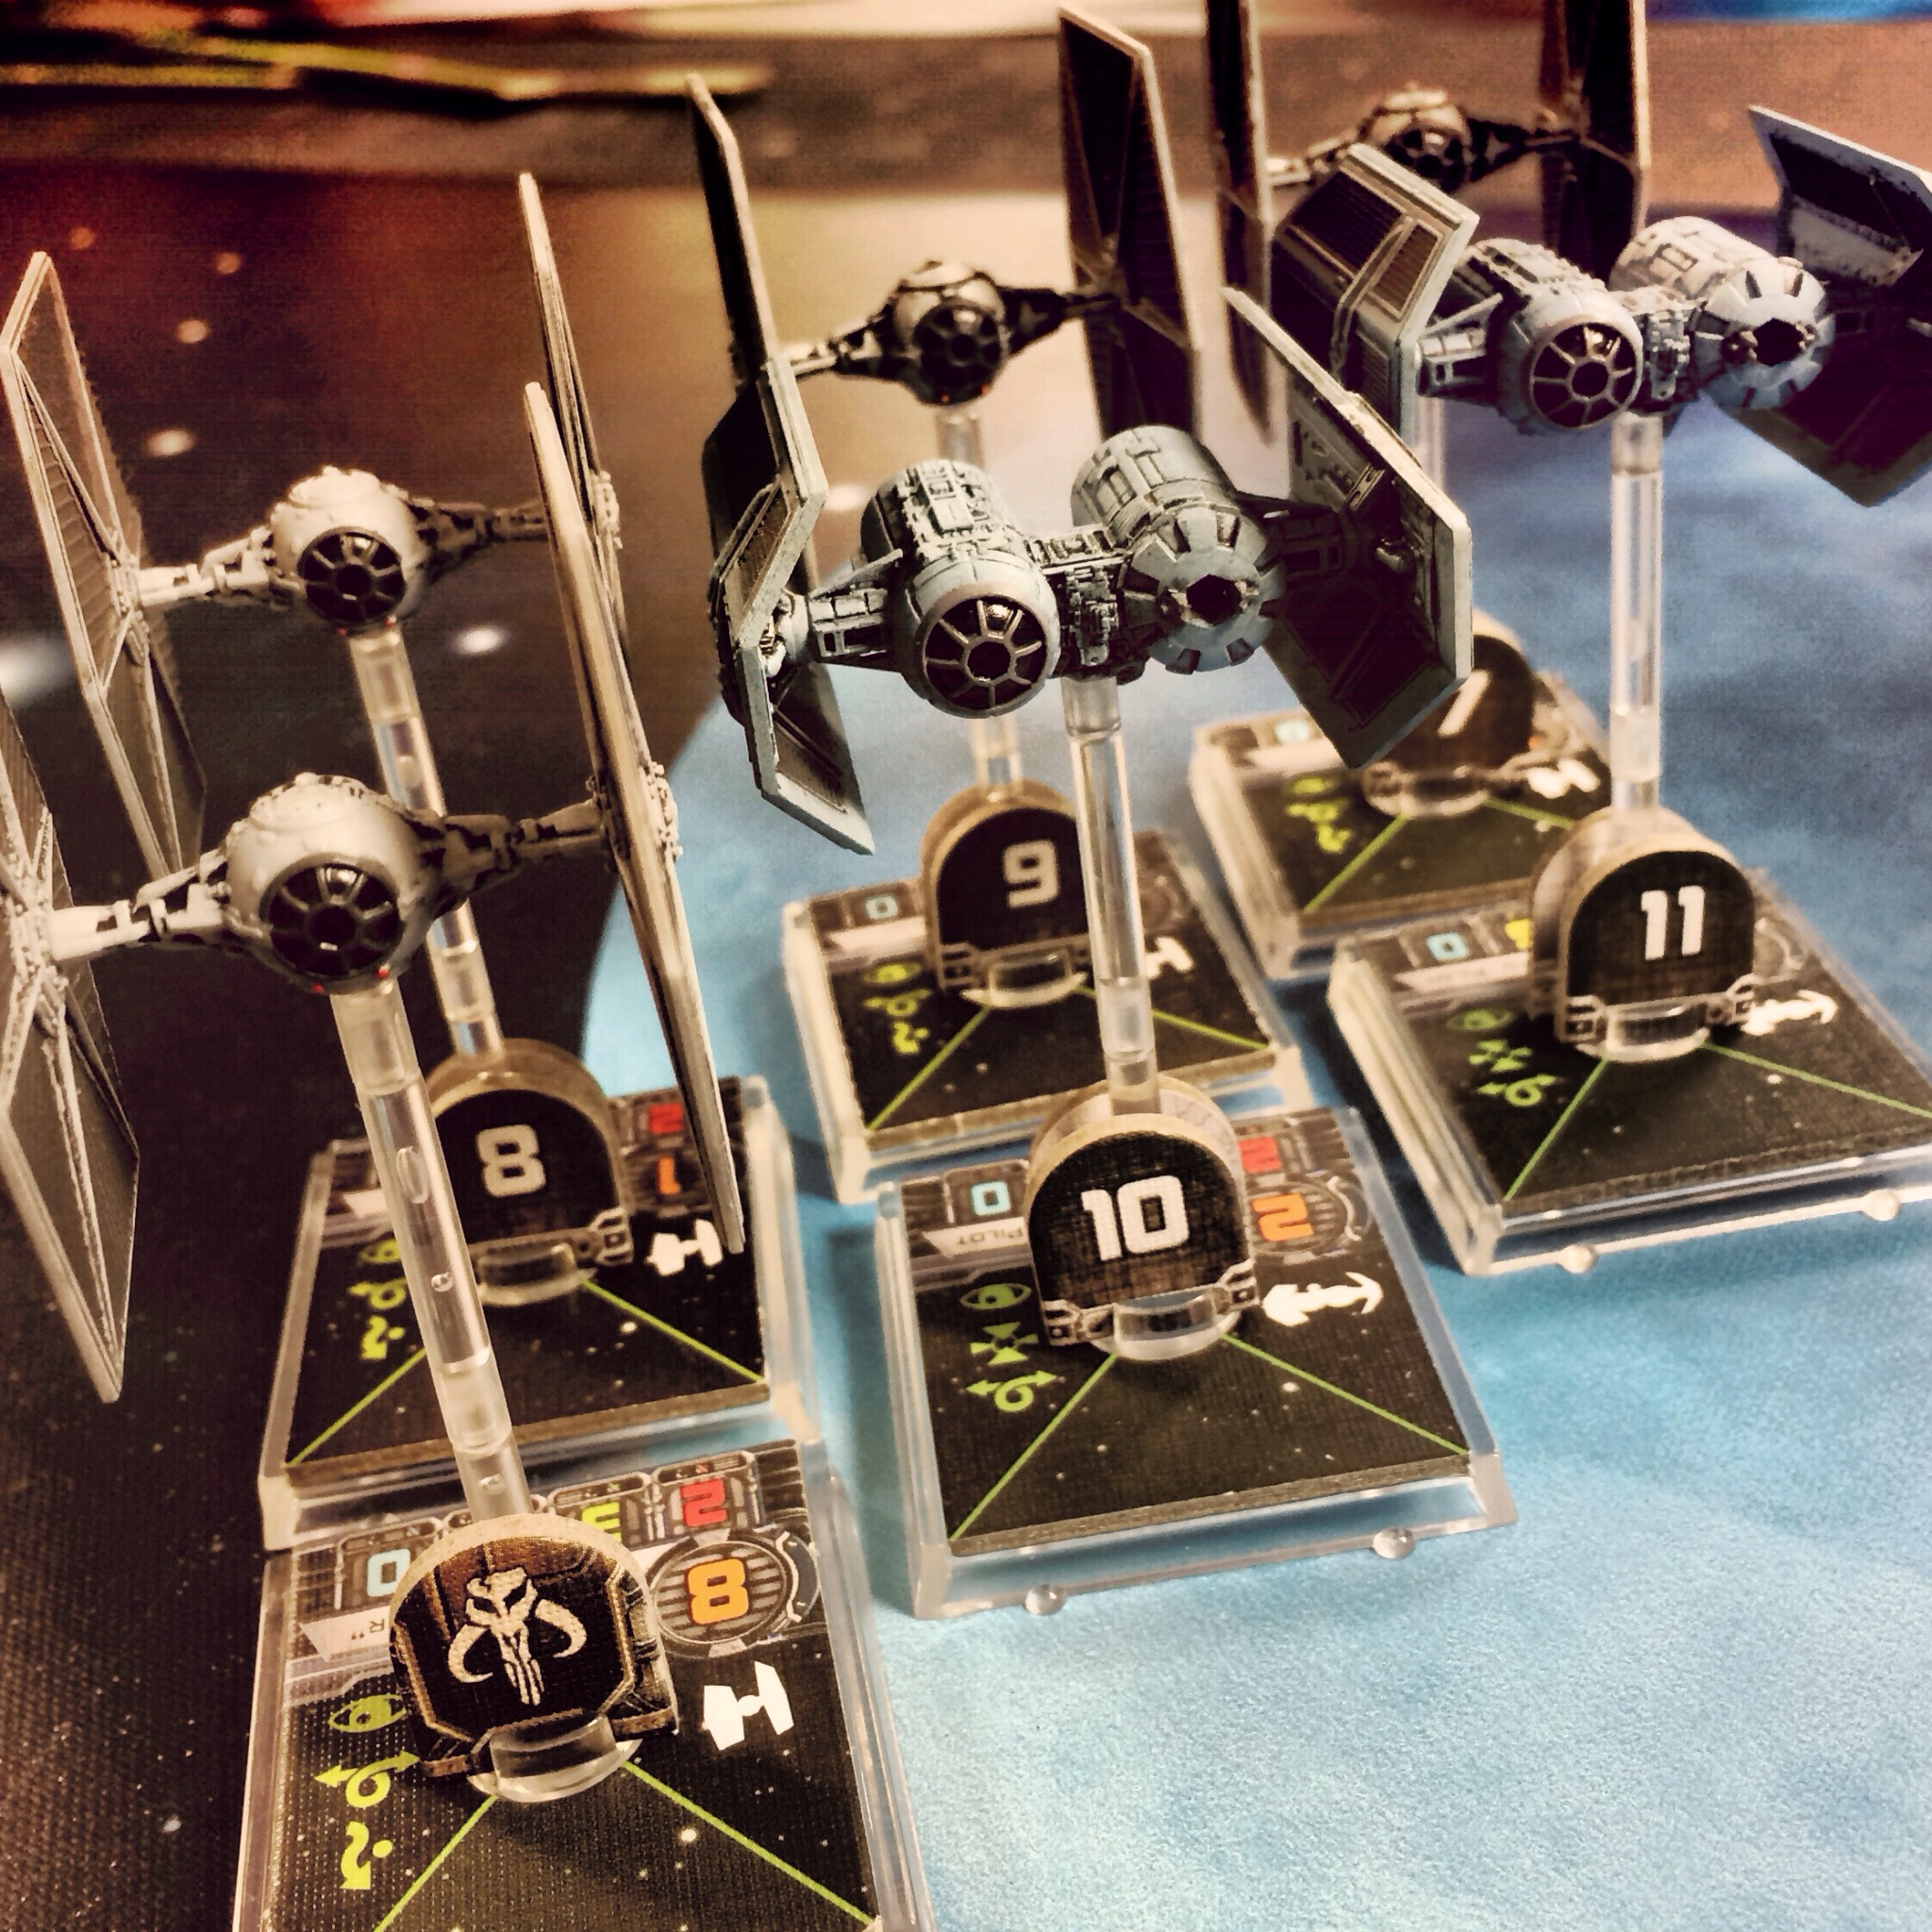 Star Wars X-Wing Game Nights